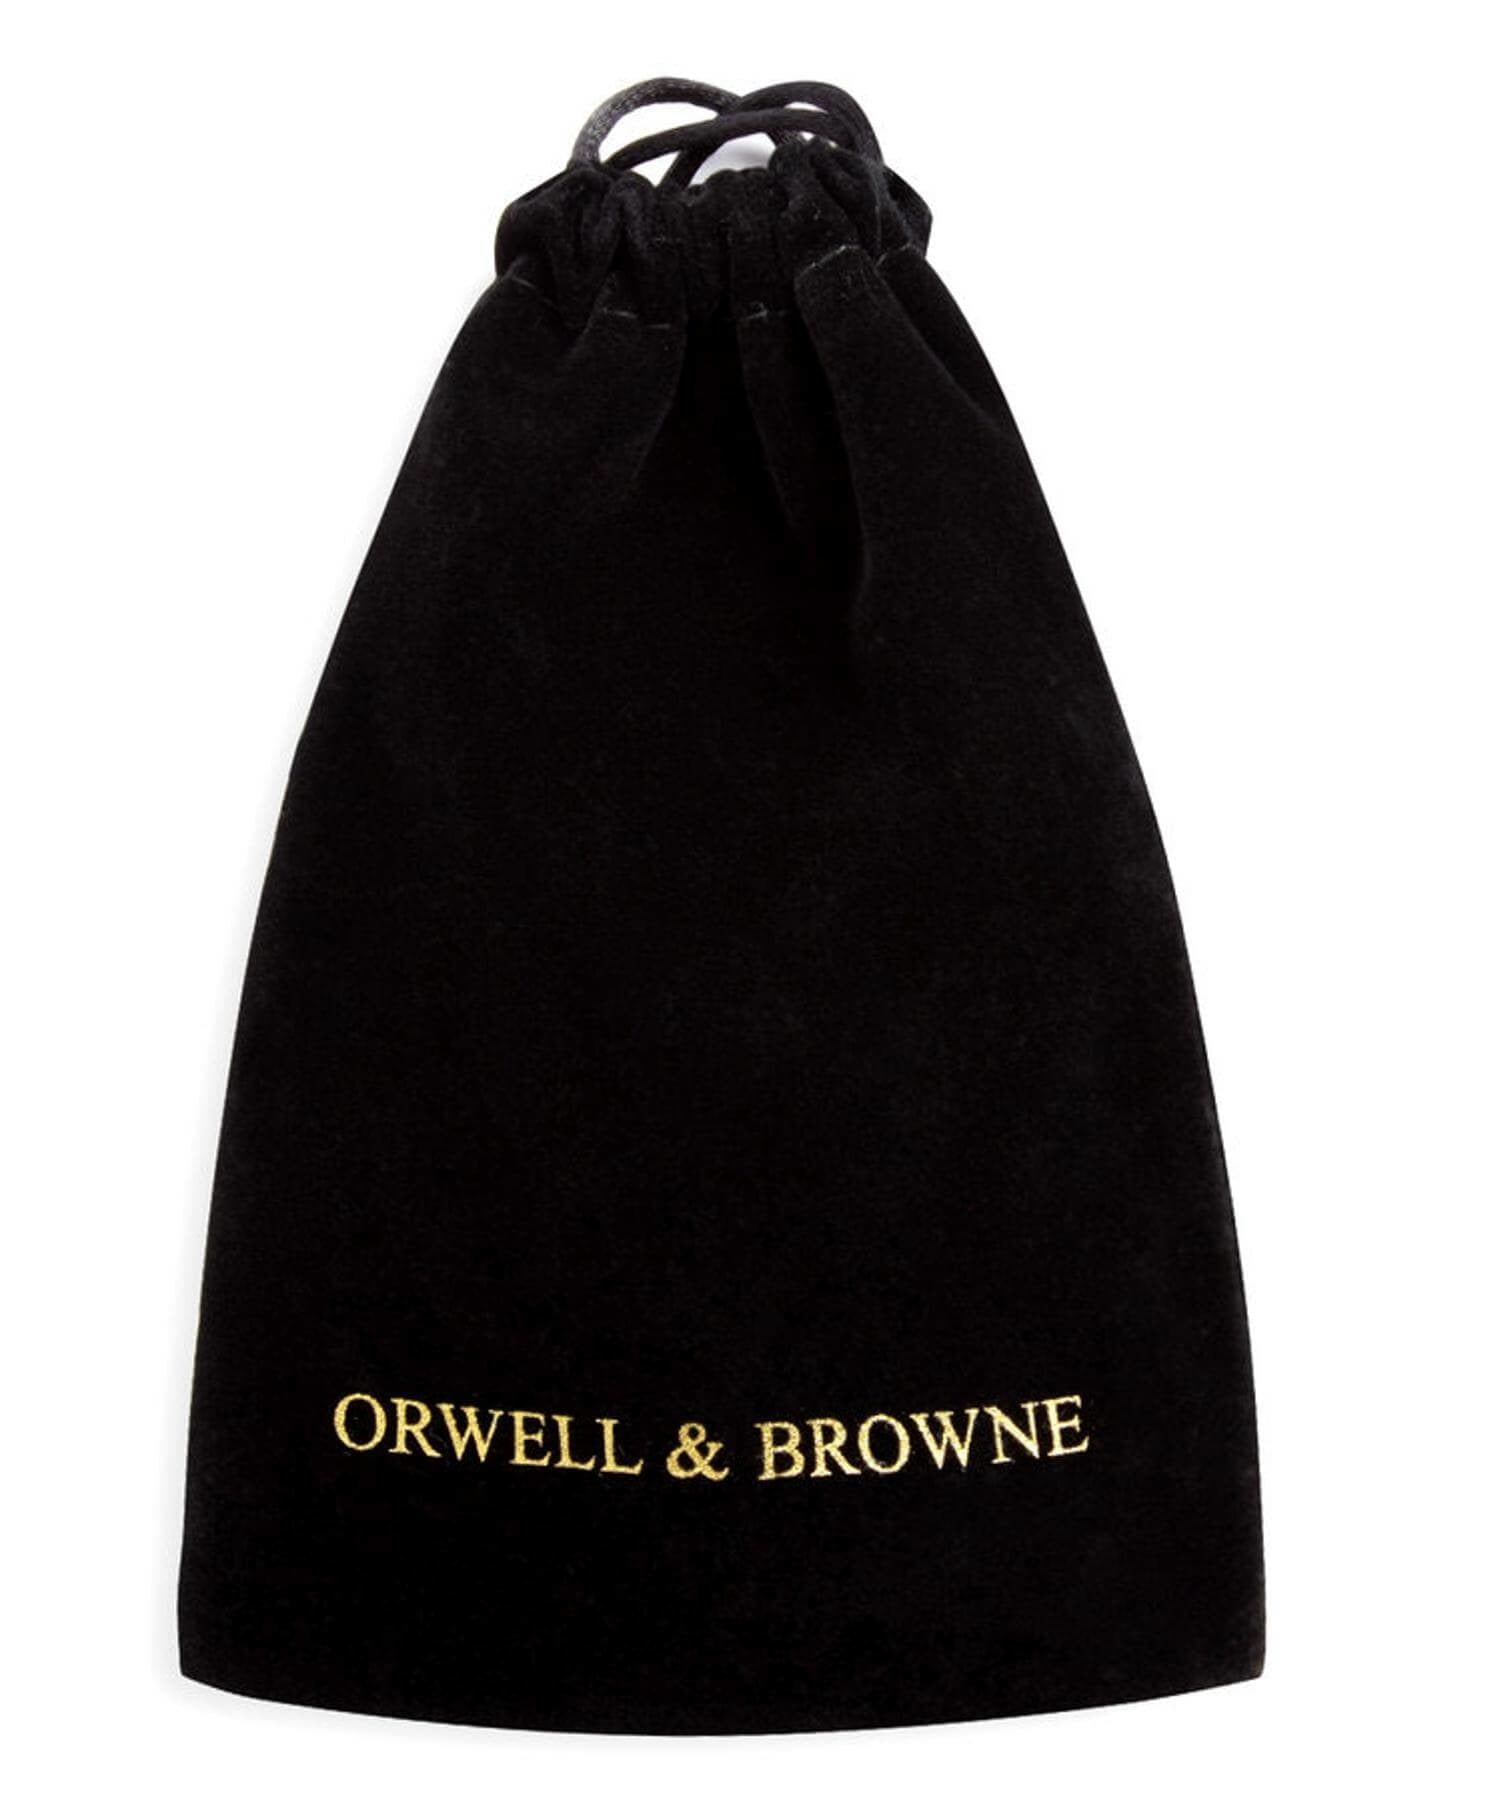 Donegal Tweed Pocket Square - Royal Purple - [Orwell & Browne] - Mens Accessories - Irish Gifts